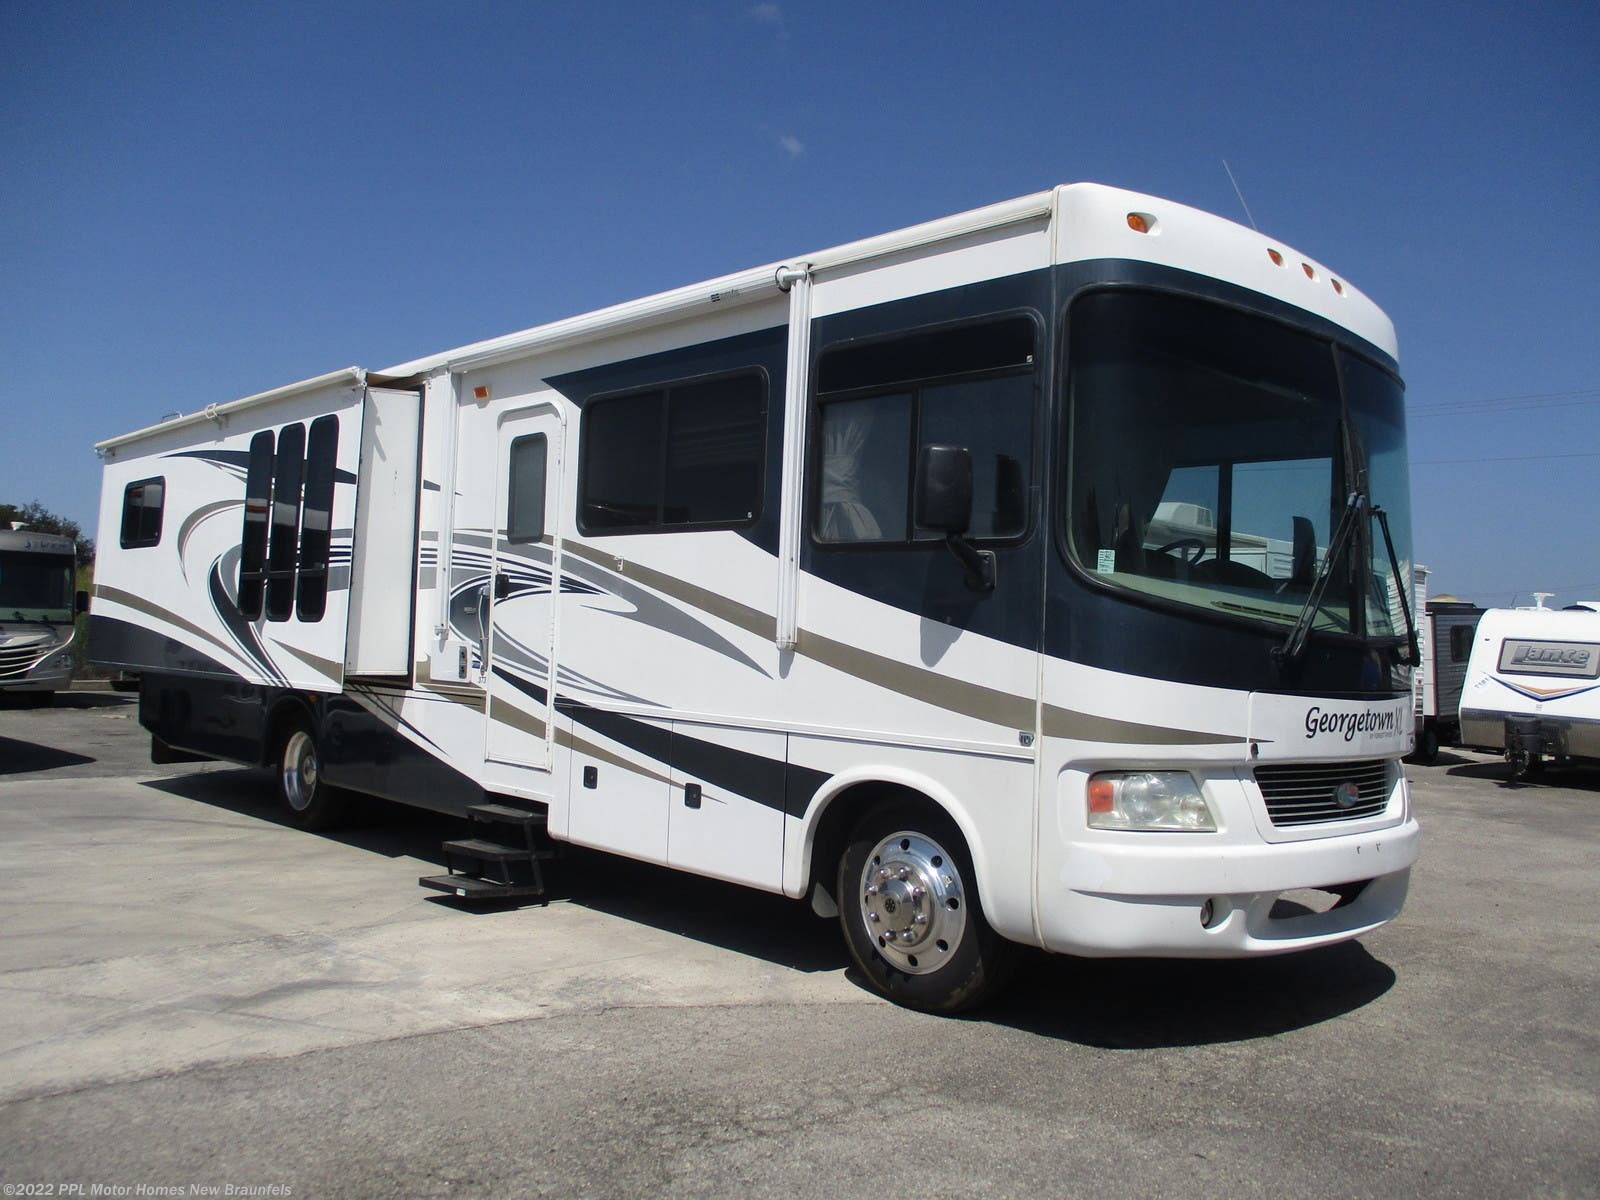 Georgetown Xl Motorhome Wiring Diagrams Sprinter Alpine Hurricane Diagram Rockwood On Chateau